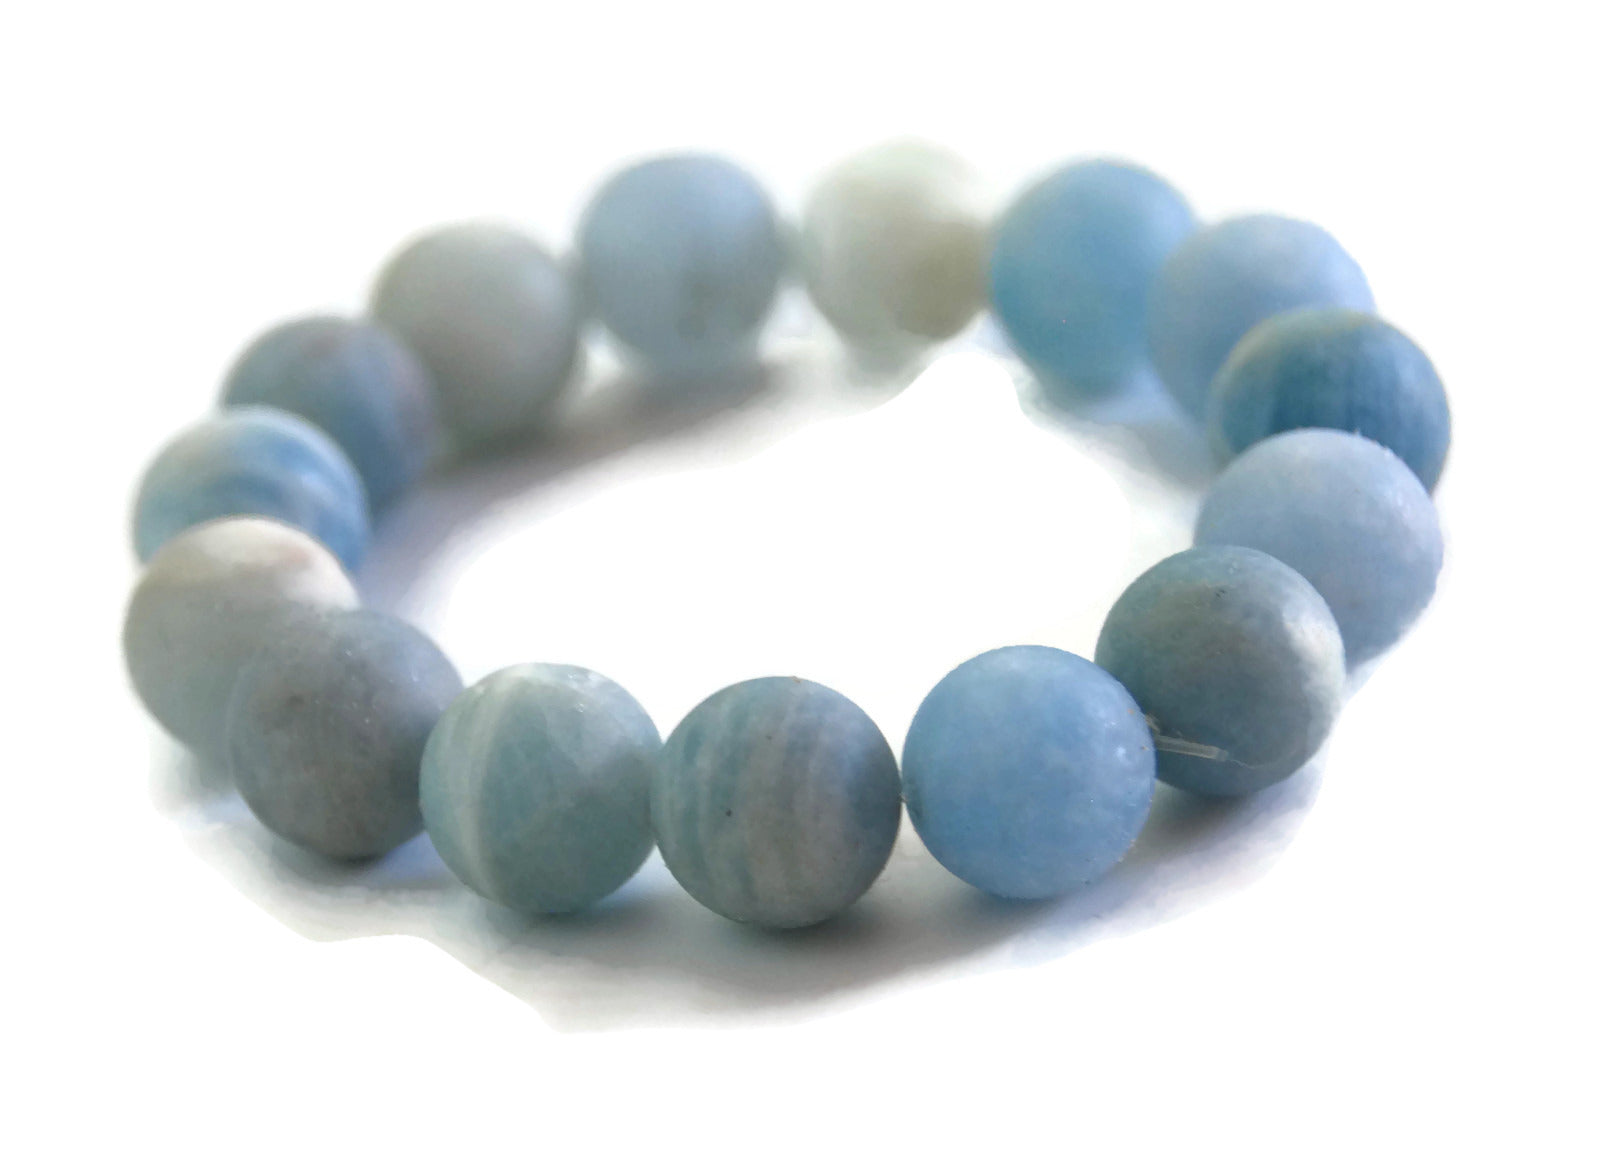 Lotus Line Matte Aquamarine Stone Meditation Yoga Wrist Mala Stretch Bracelet, Throat Chakra